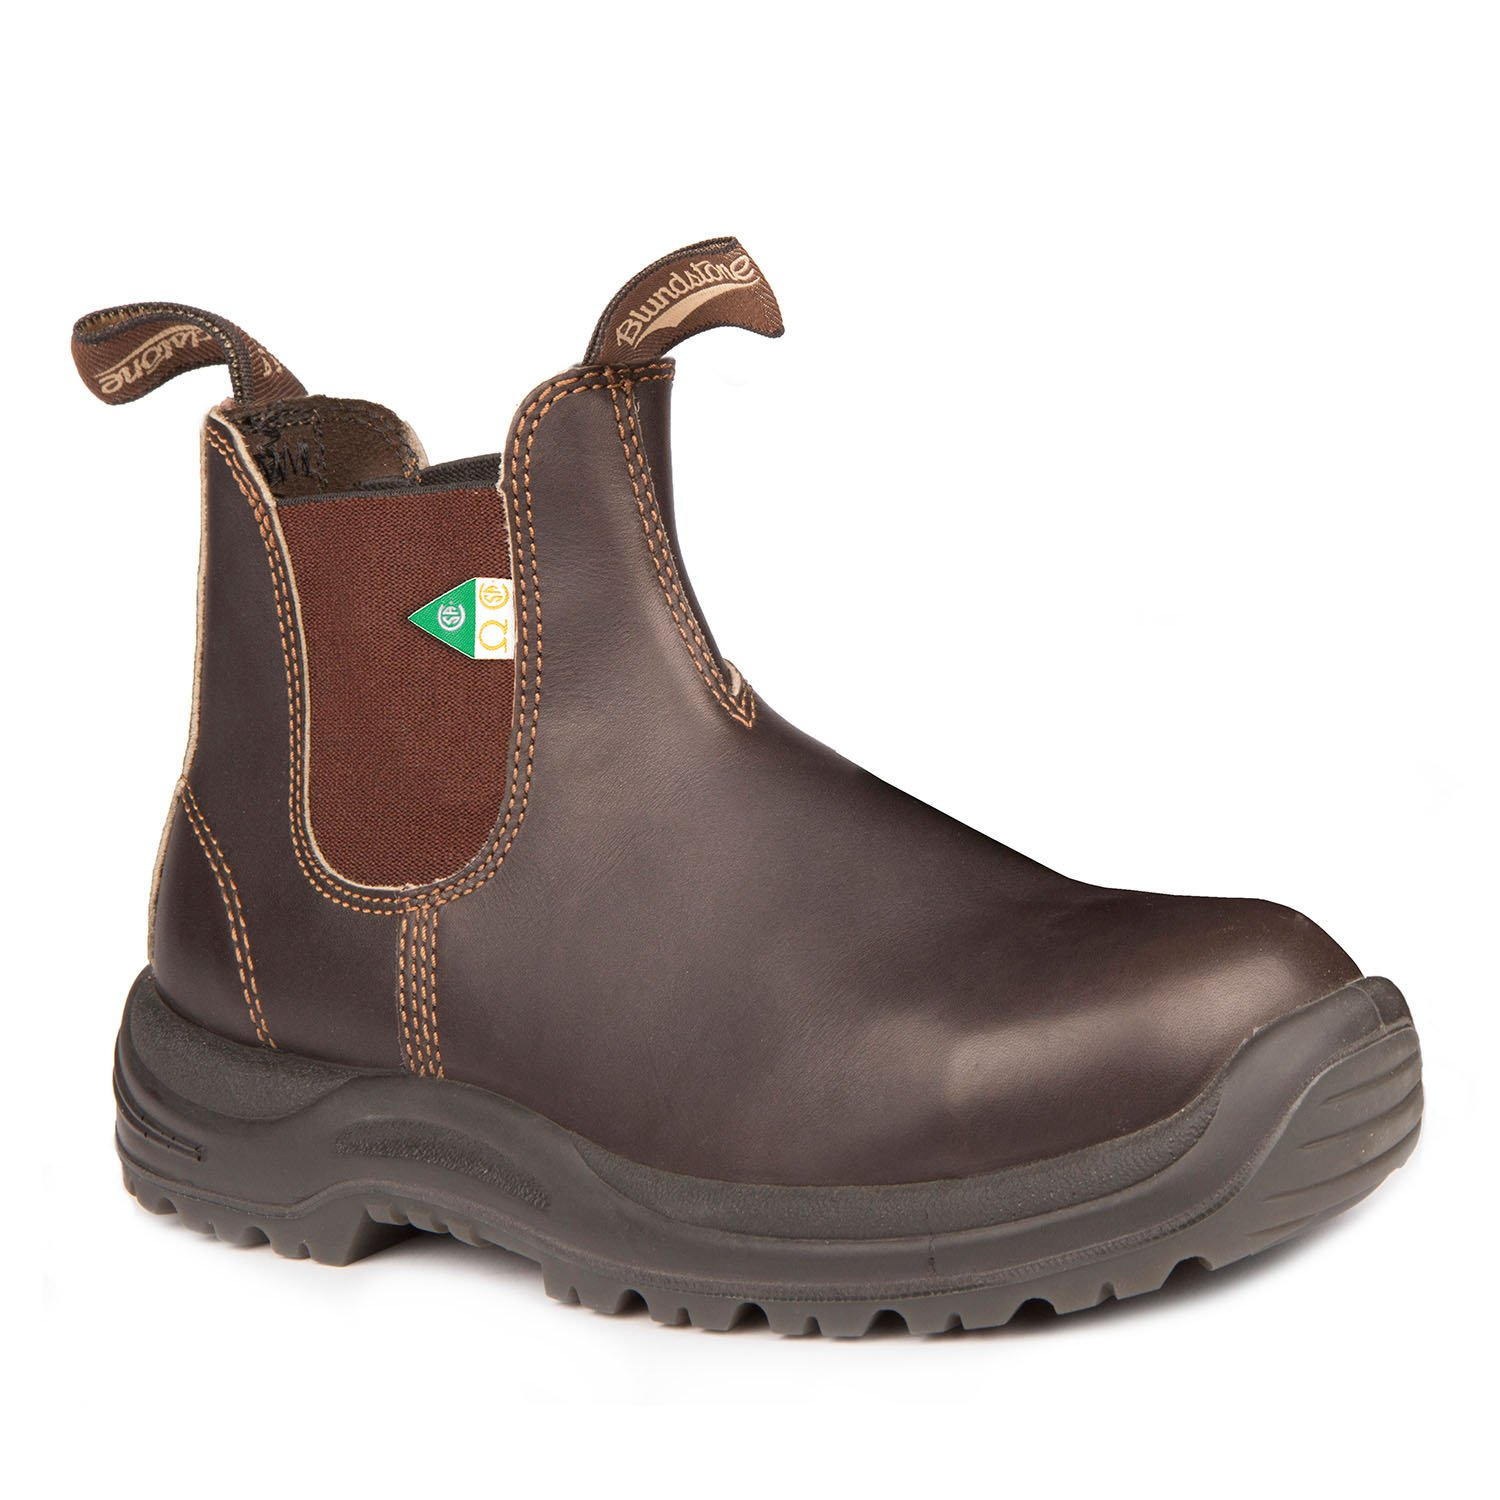 Blundstone 162 - Work & Safety Boot Stout Brown-Blundstone